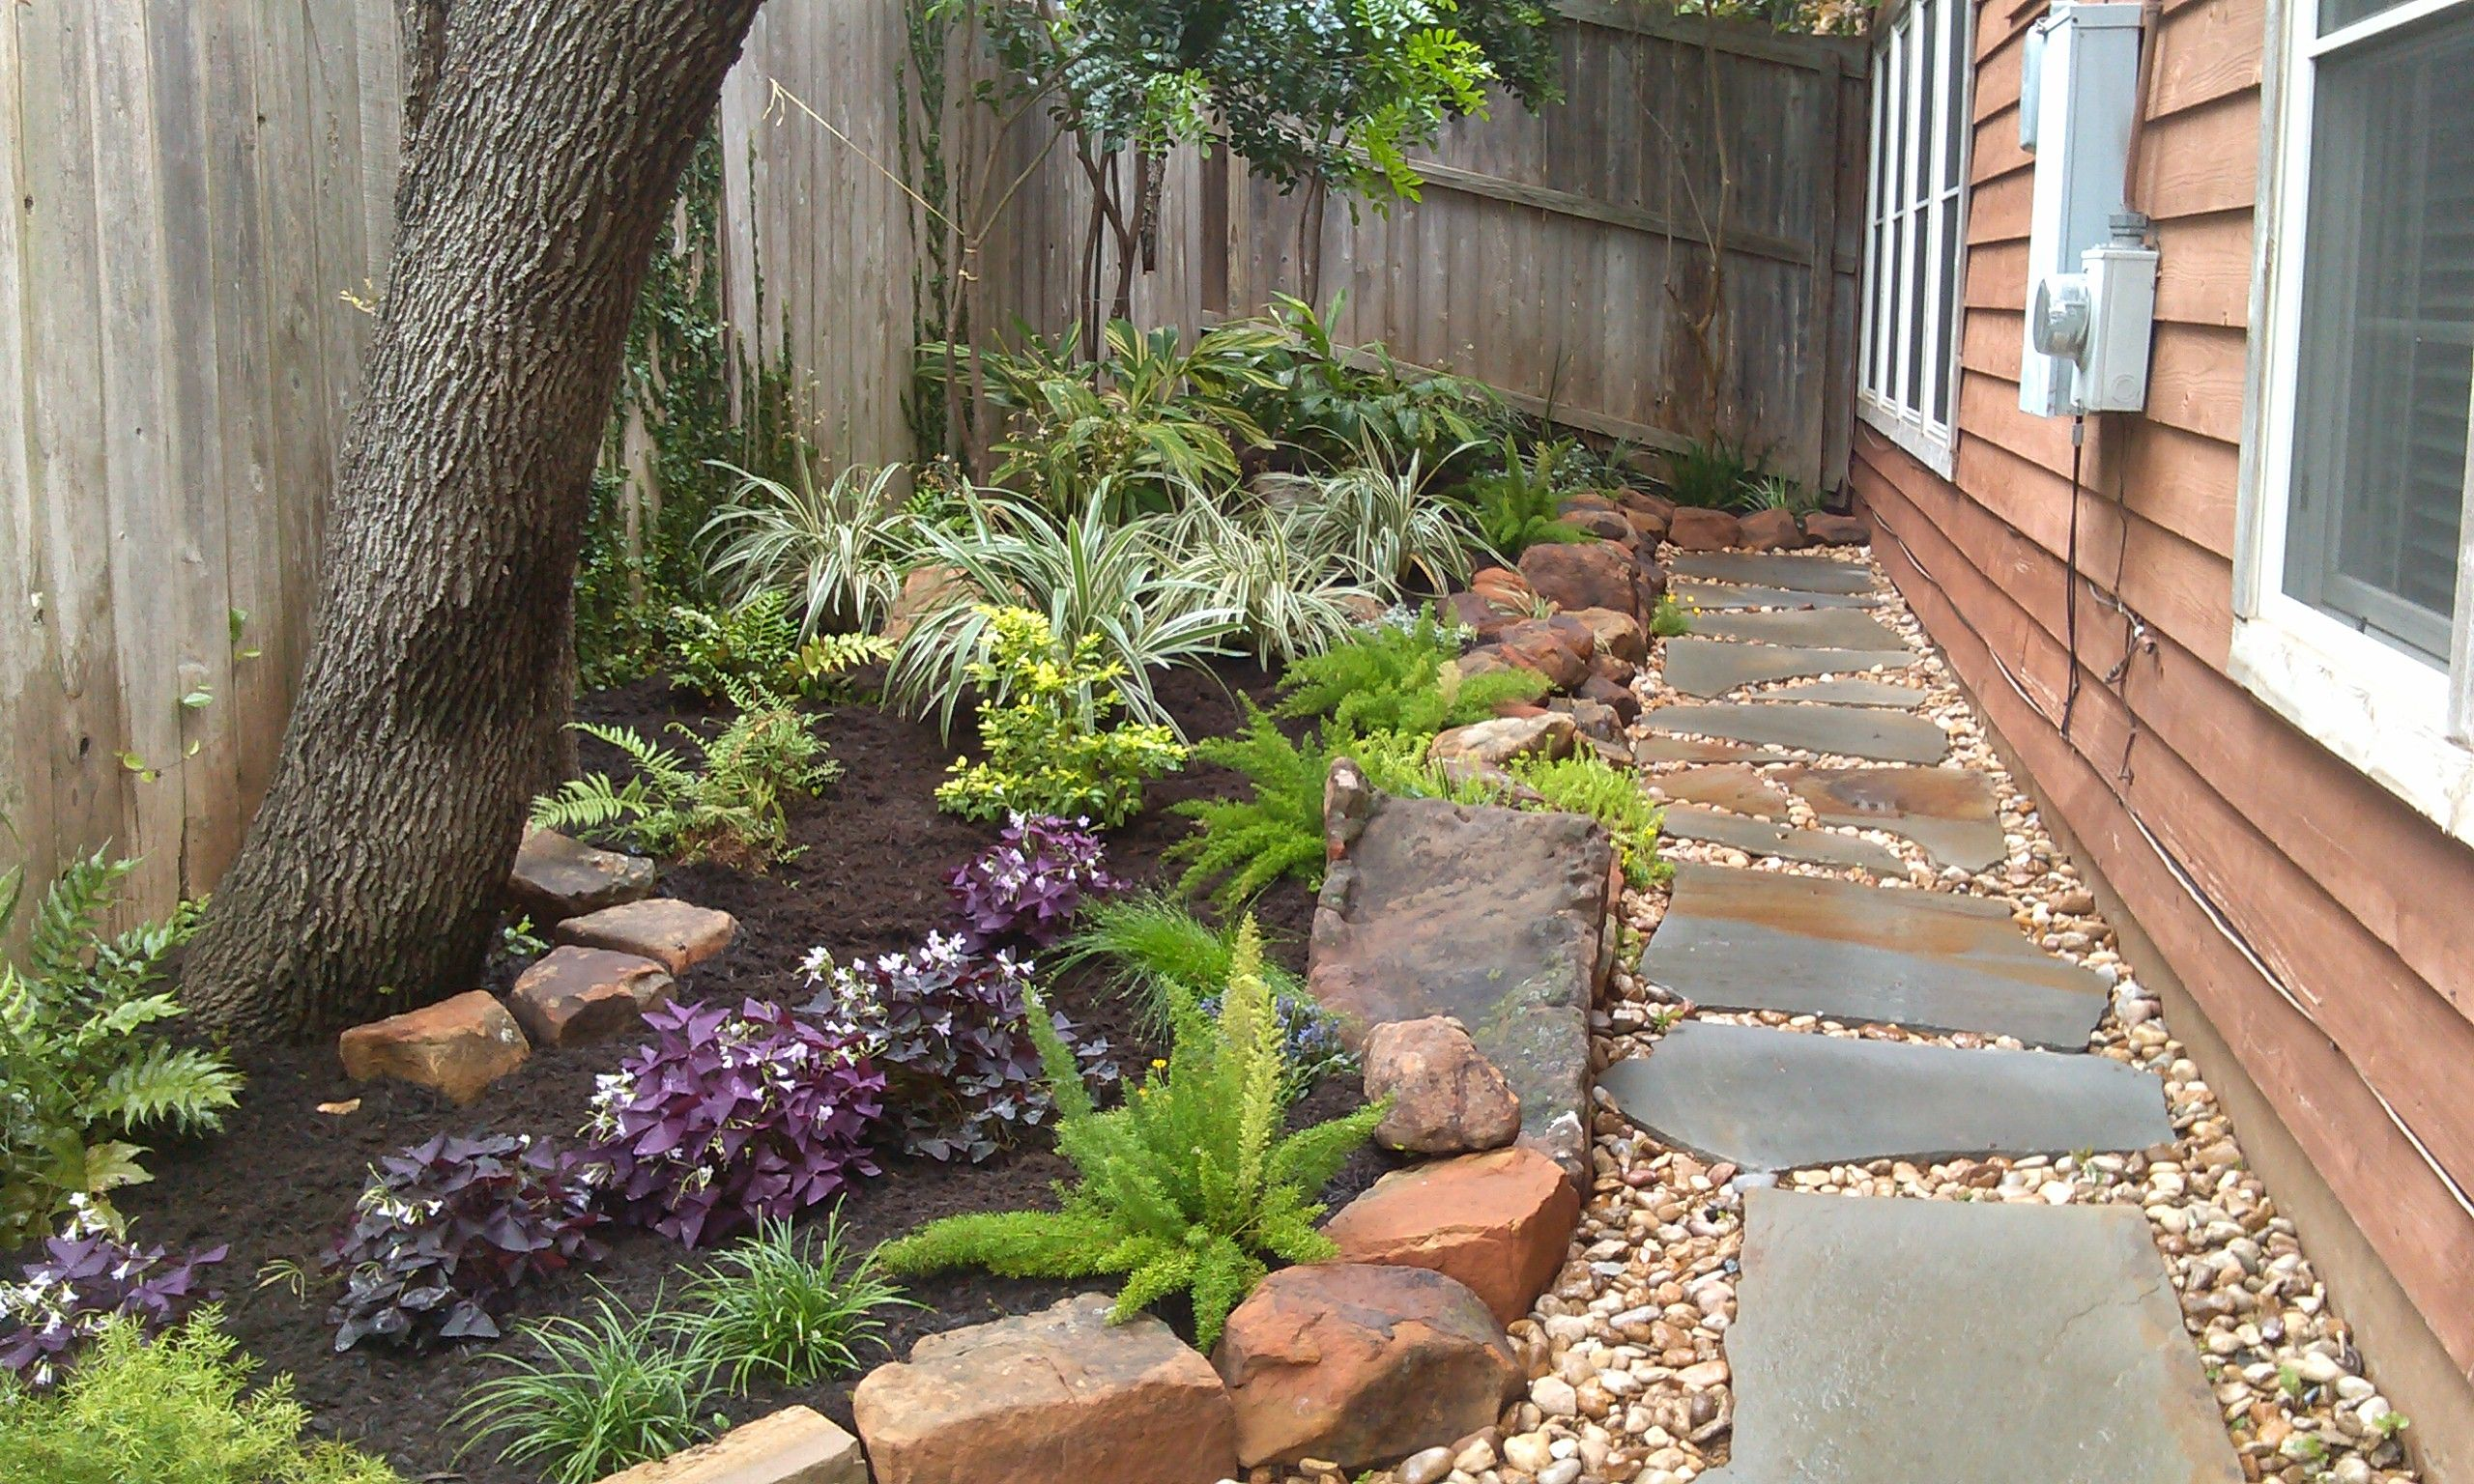 Charming Small Spaces. Natural Stone Work With Oklahoma Flagstone Set In River Rock  With Native Shade